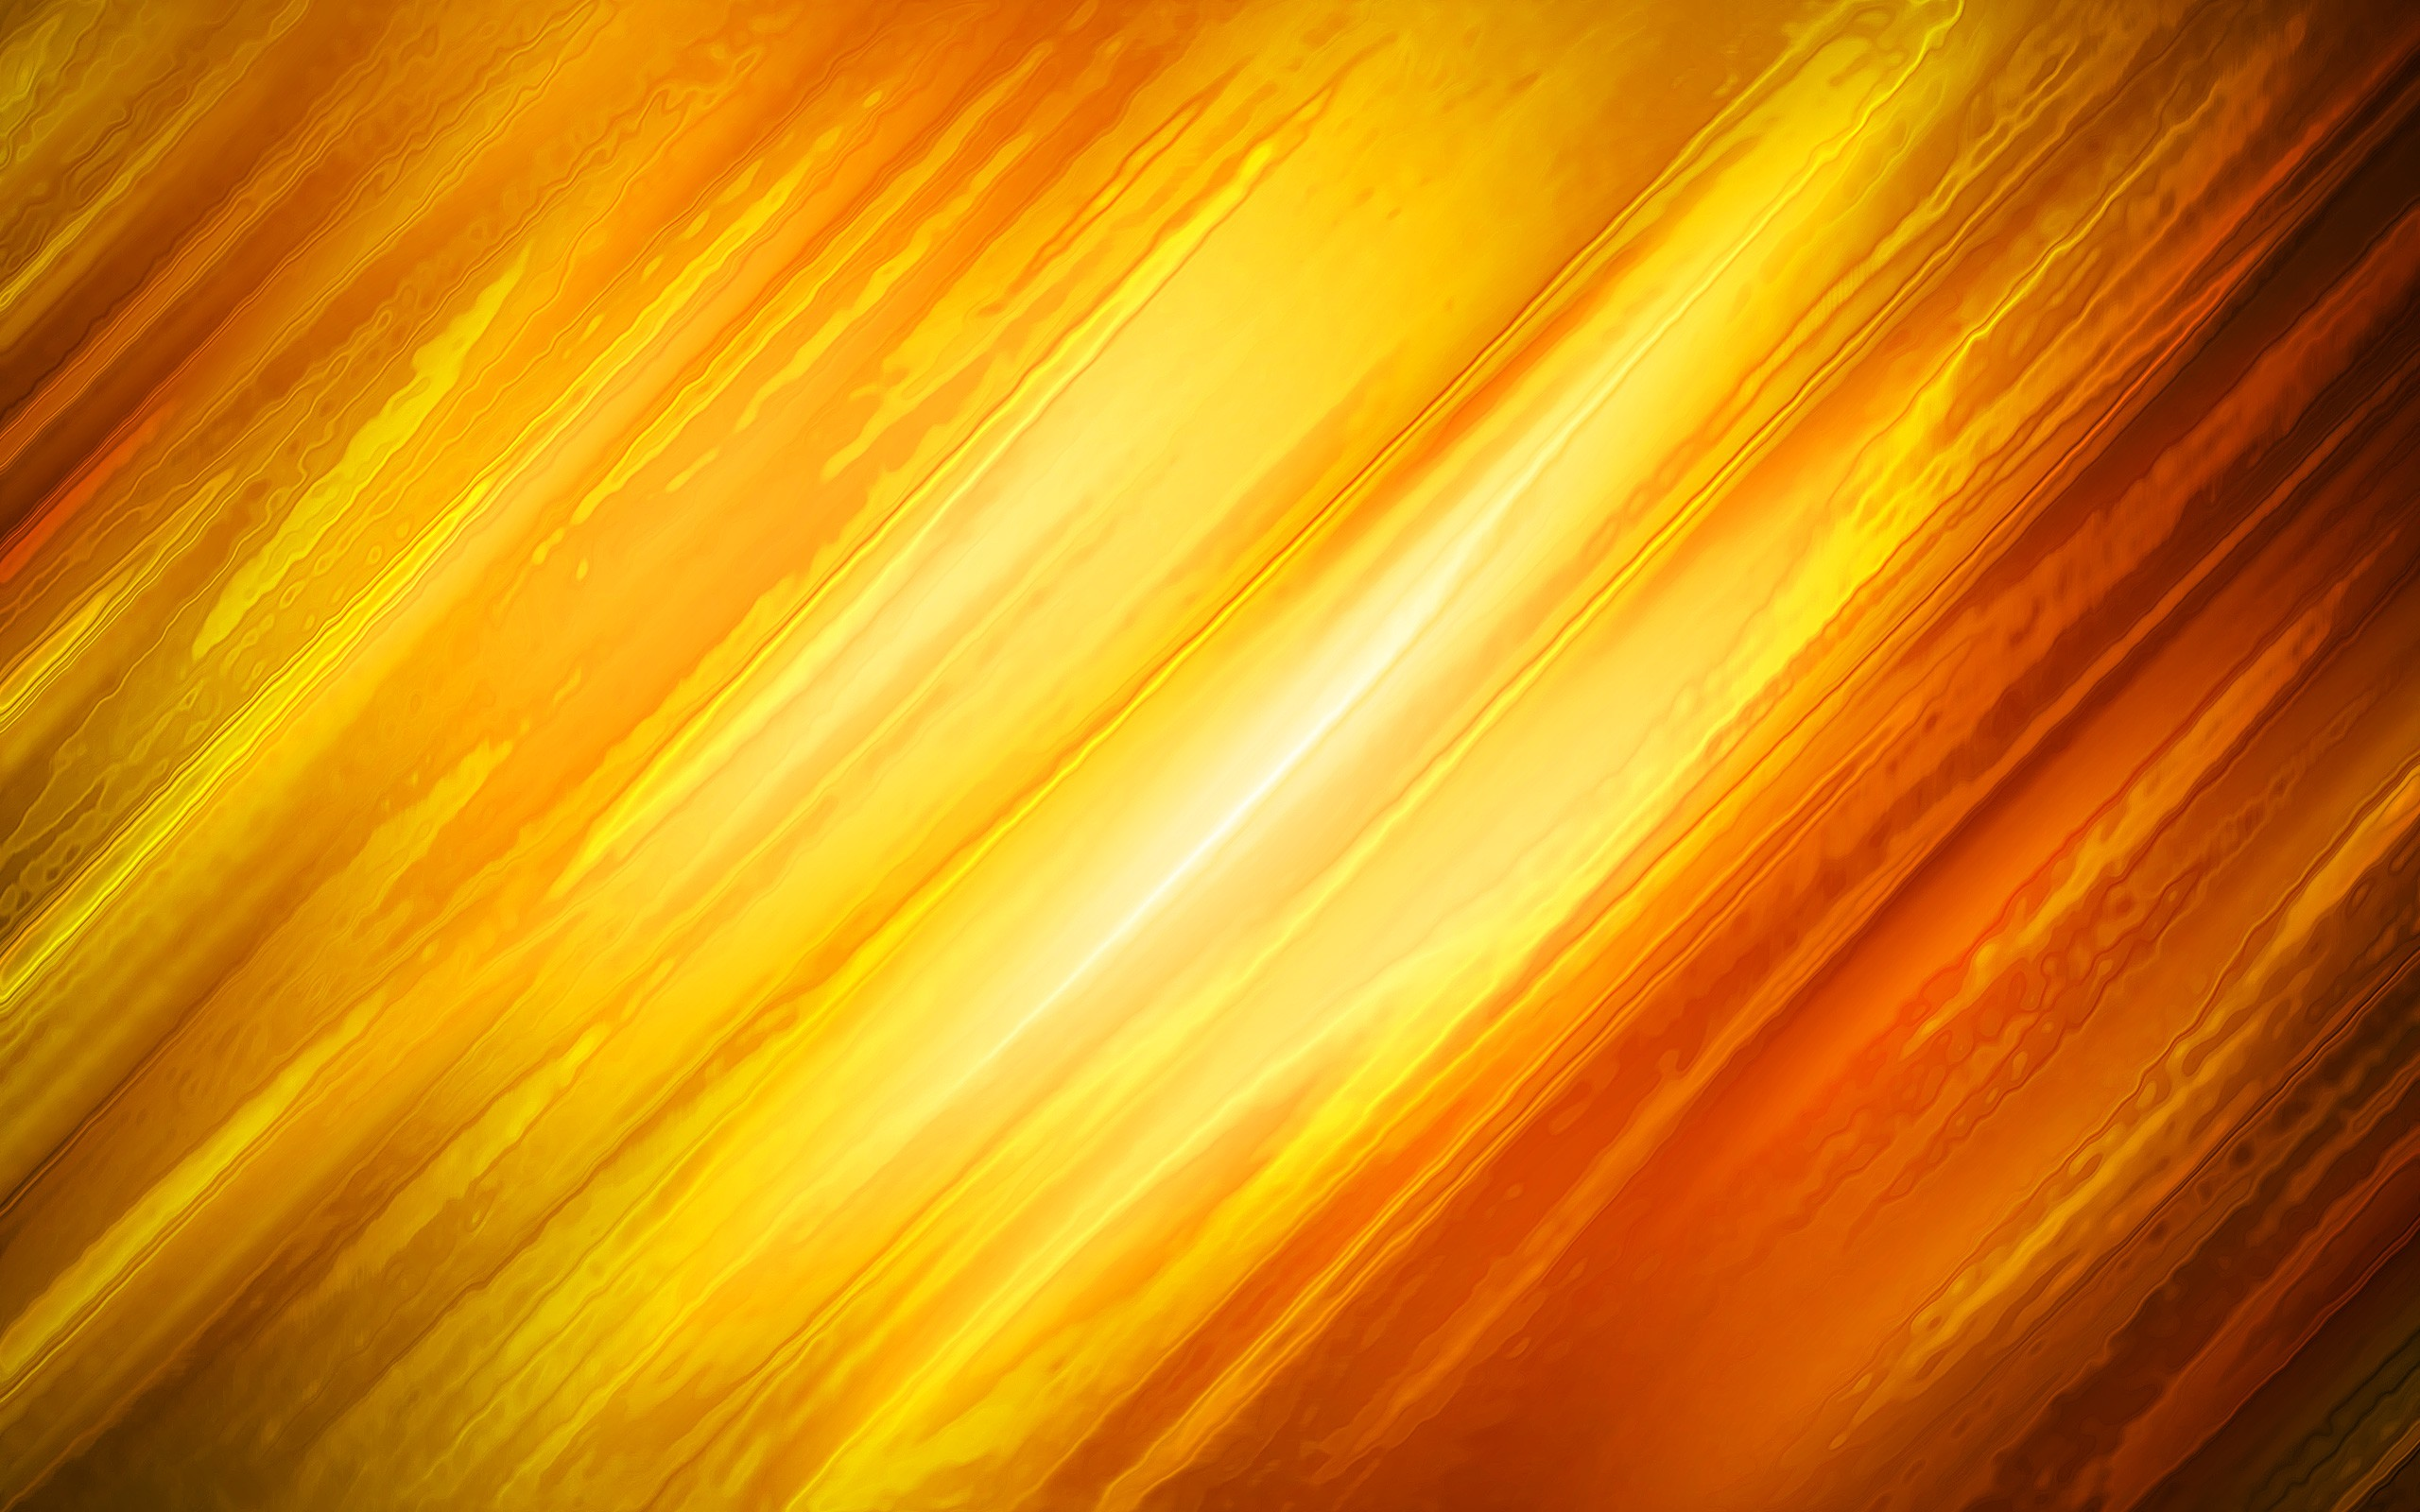 Night light wallpapers night light stock photos next abstract yellow and orange background thecheapjerseys Images